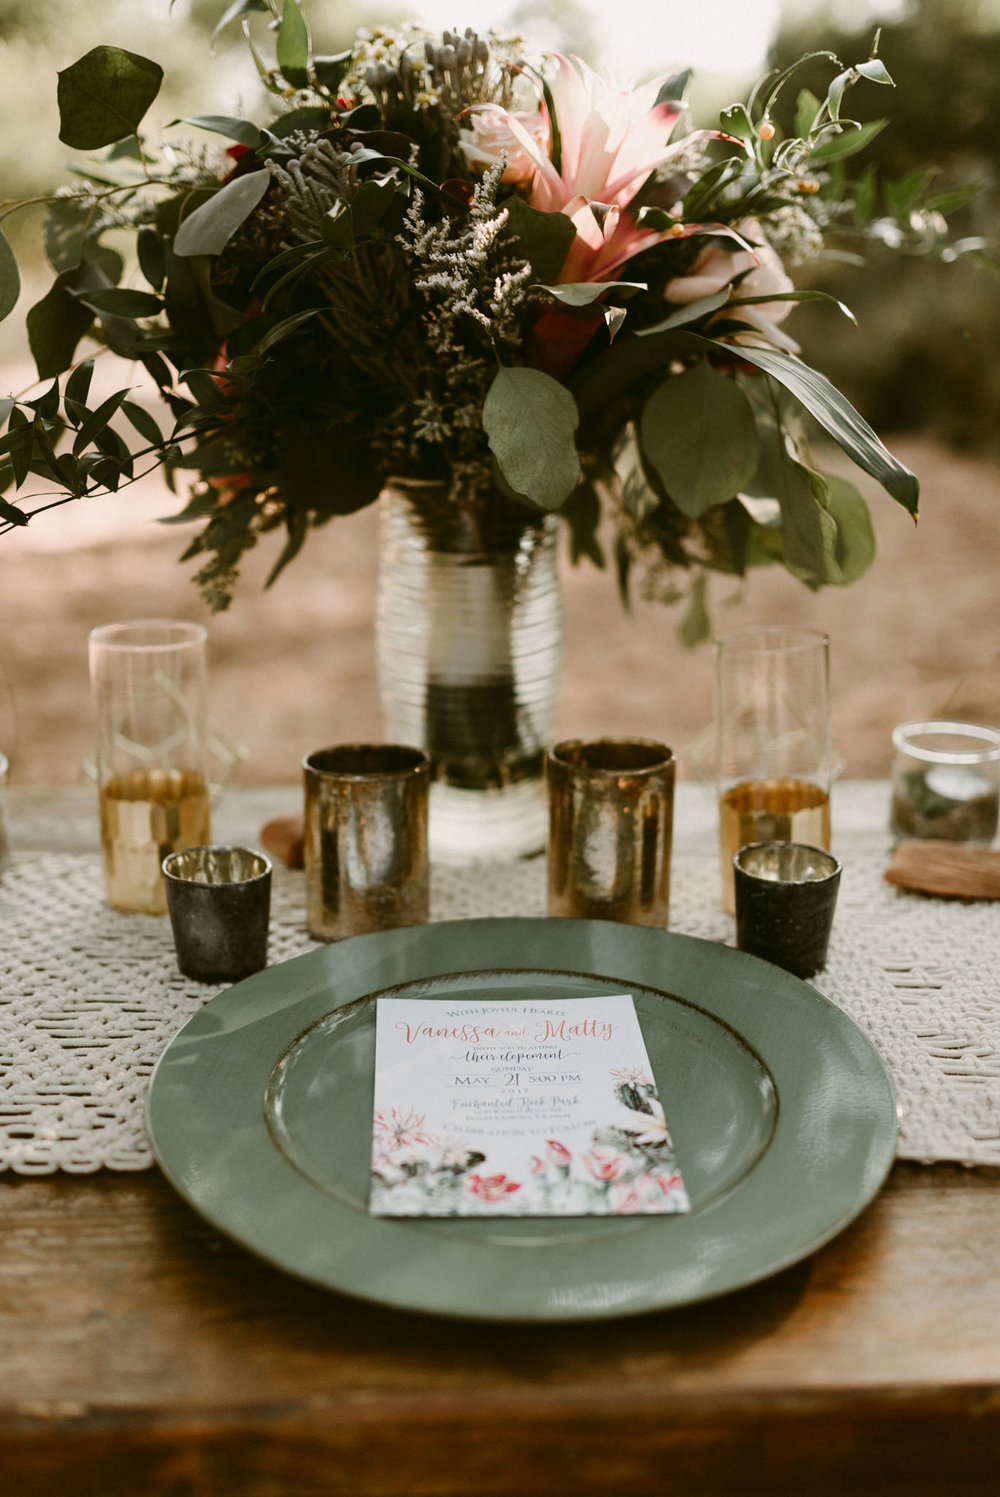 Bohemian-Floral-Greenery-Macrame-Southwestern-Desert-Elopement-Enchanted-Rock-Natural-Park-Cactus-Invitations-Kerlyn-Van-Gelder-Photography-Austin-Wedding-Photographer